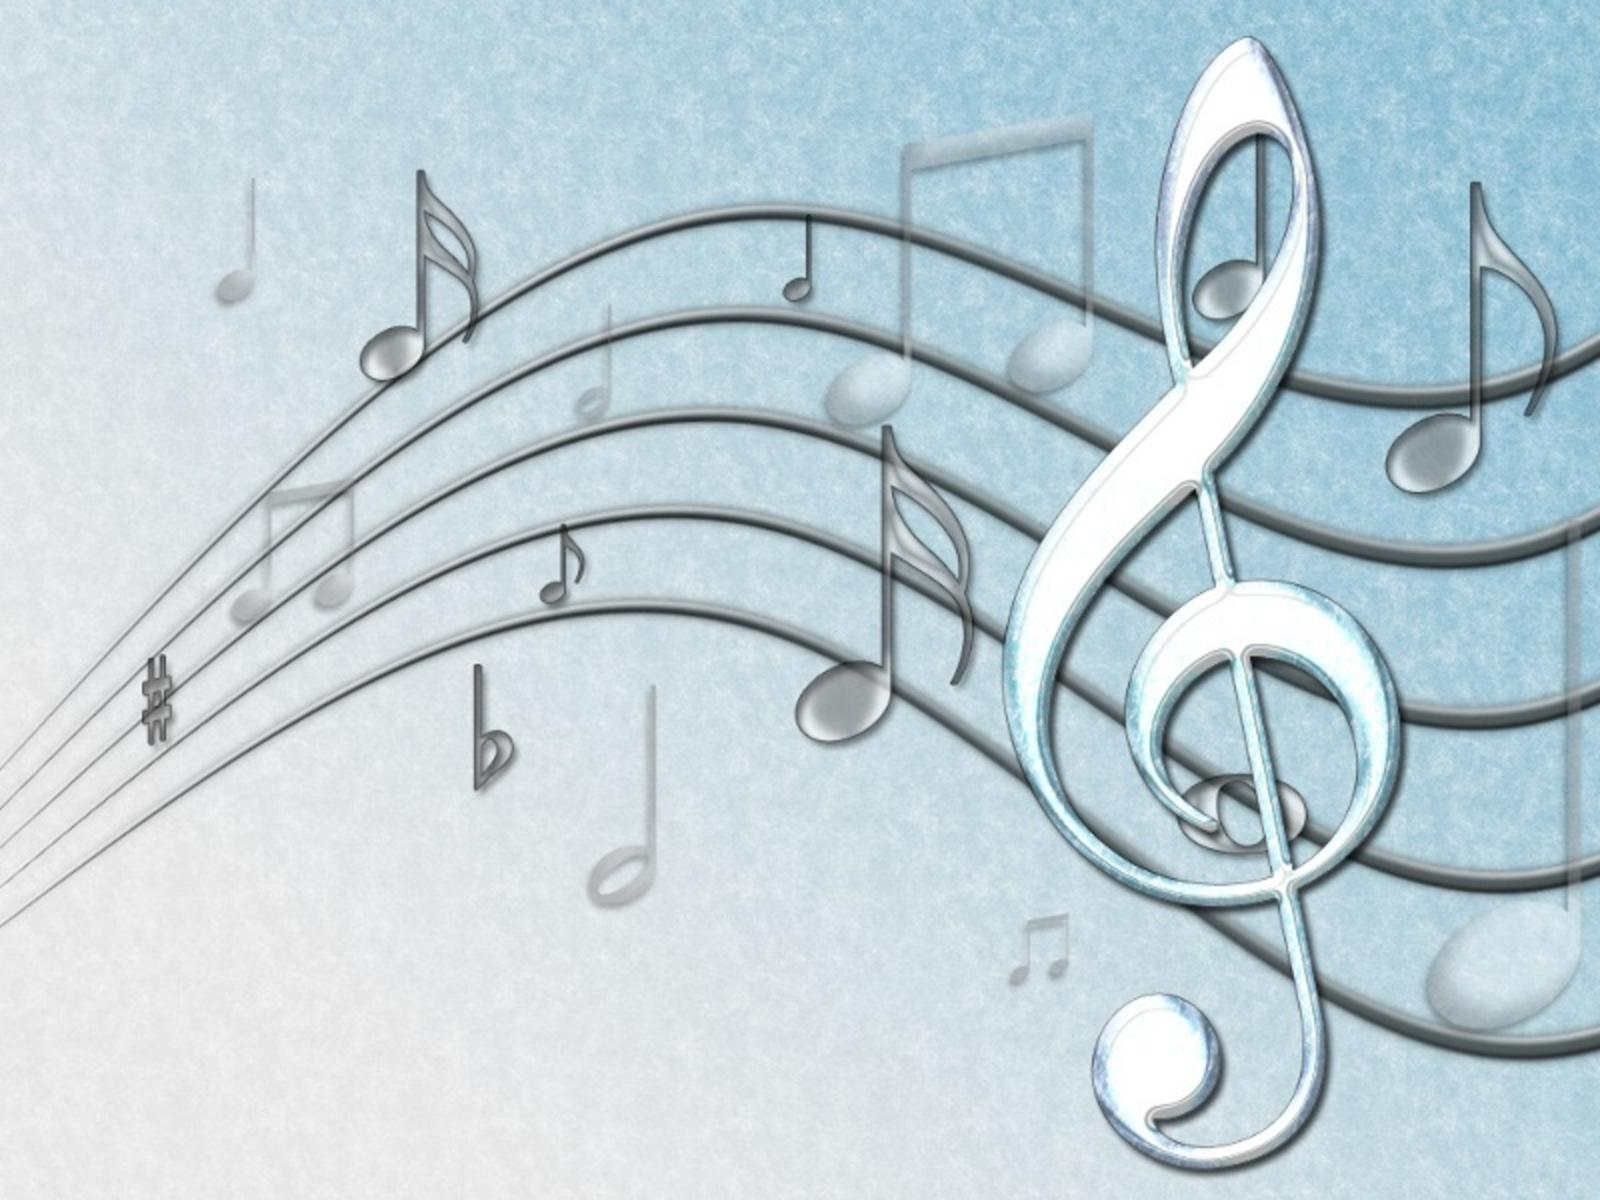 Music Notes Wallpaper 10278 Hd Wallpapers in Music   Imagescicom 1600x1200